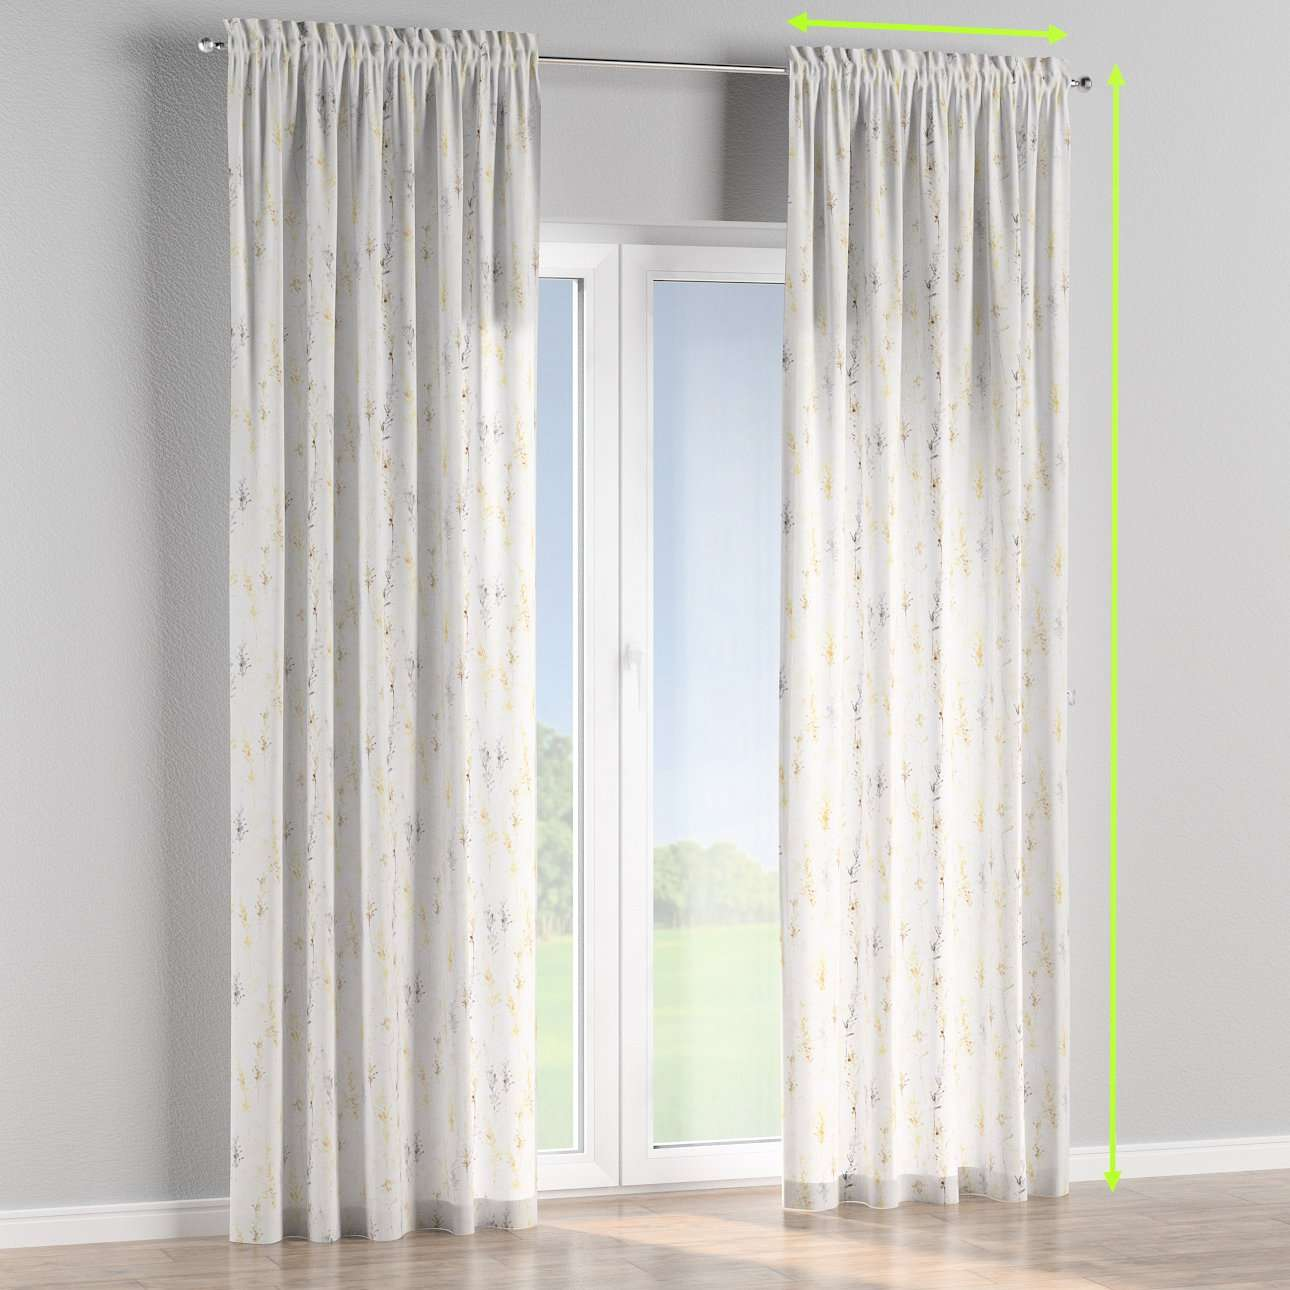 Slot and frill lined curtains in collection Acapulco, fabric: 141-36